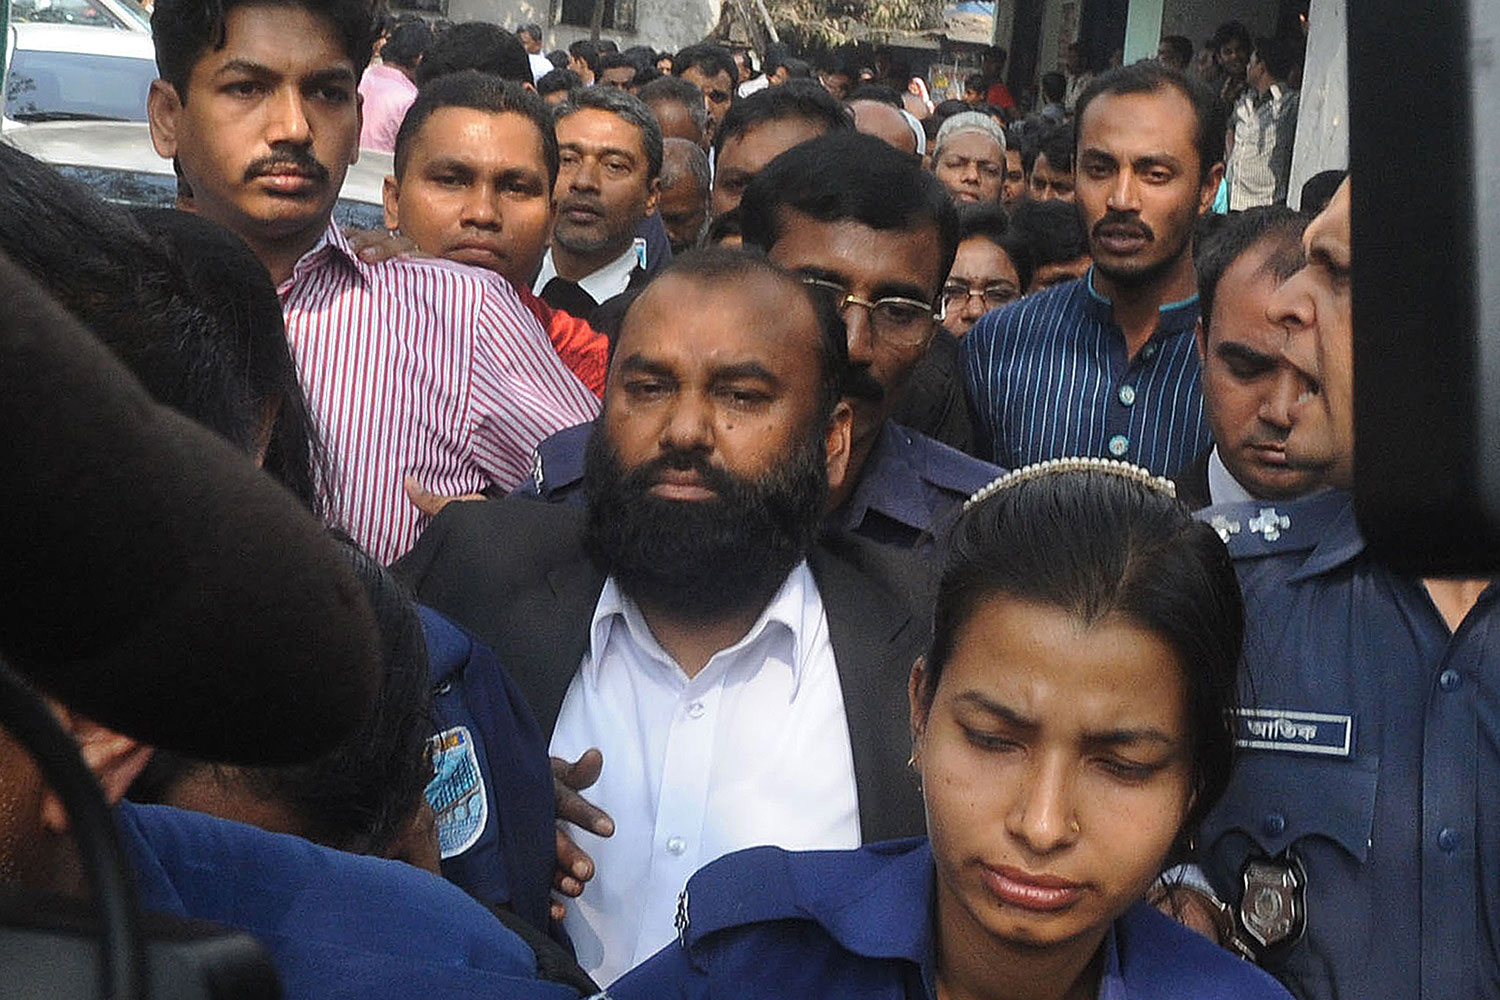 The owner of Tazreen Fashions, Delwar Hossain (C) is escorted to court in Dhaka on Feb. 9, 2014.